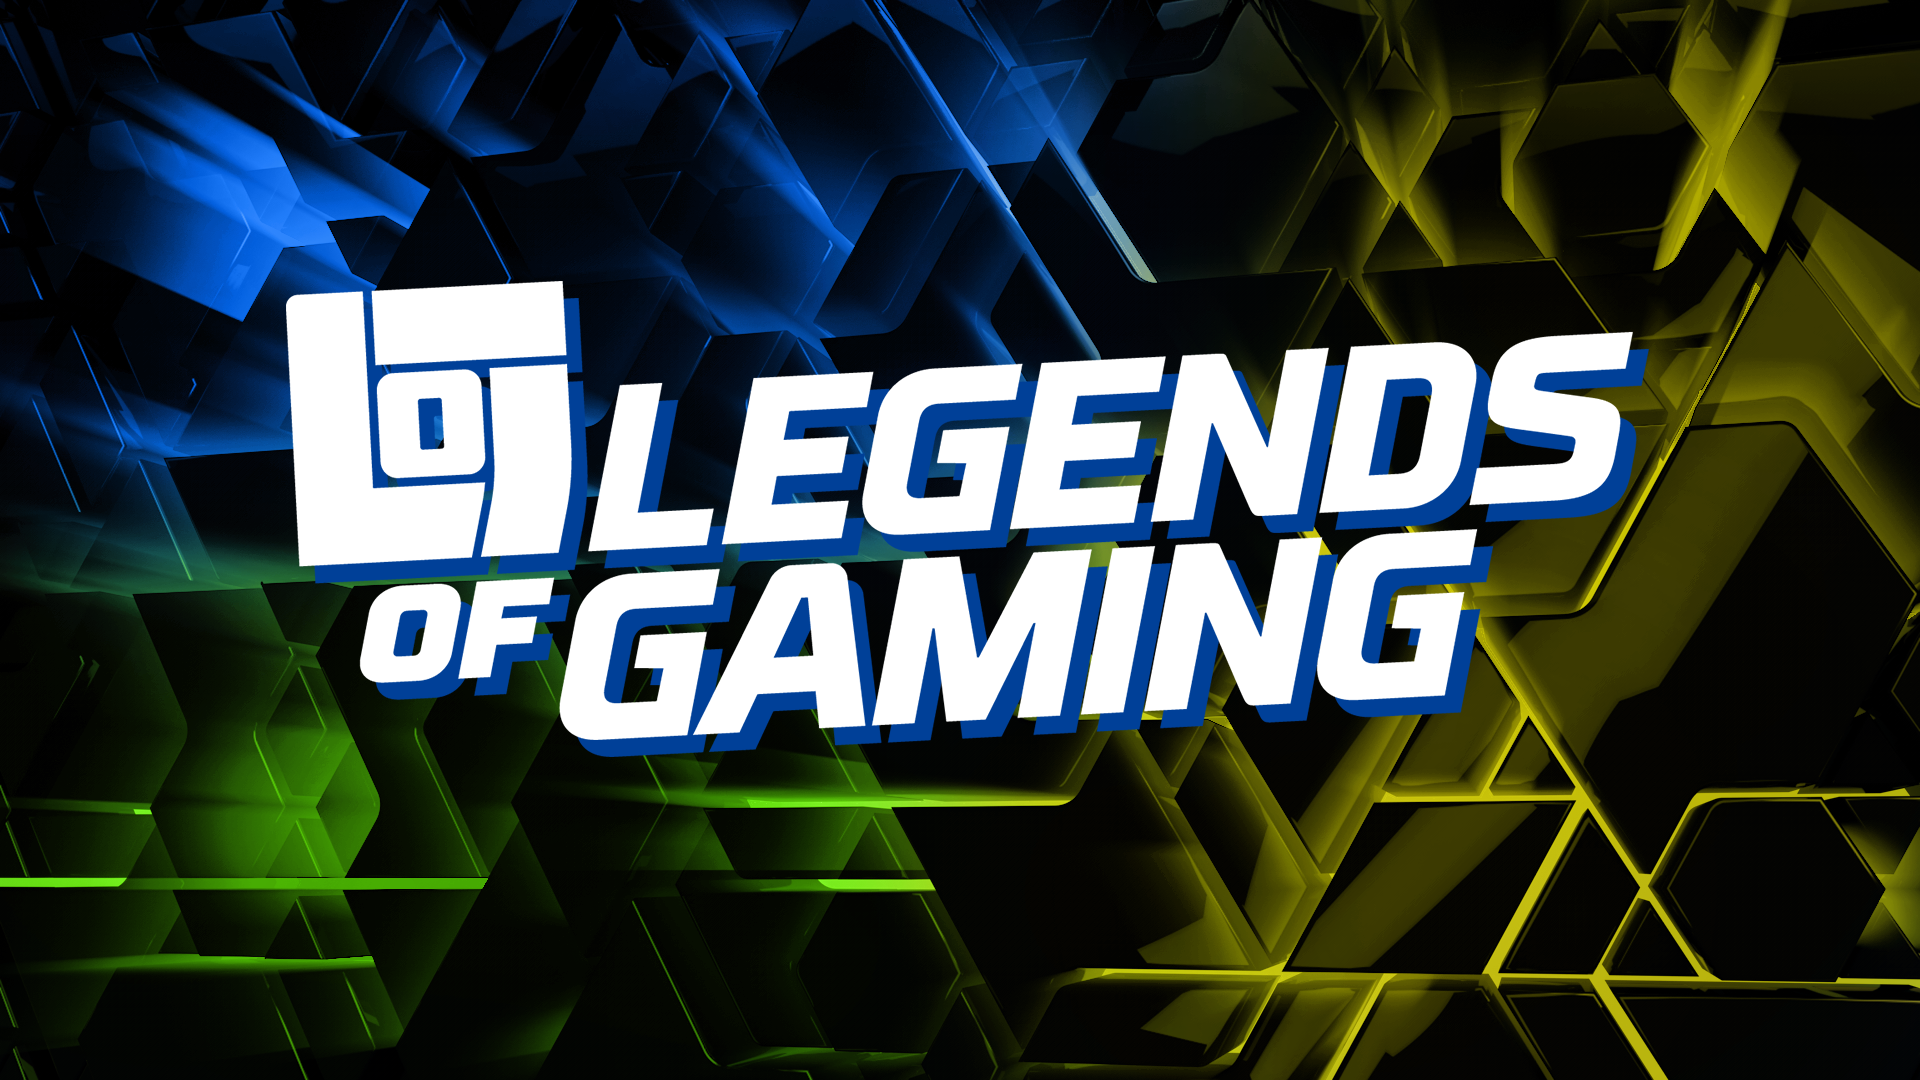 222754 legends%20of%20gaming%20kpn%20samsung%20schets 02464f original 1472485983